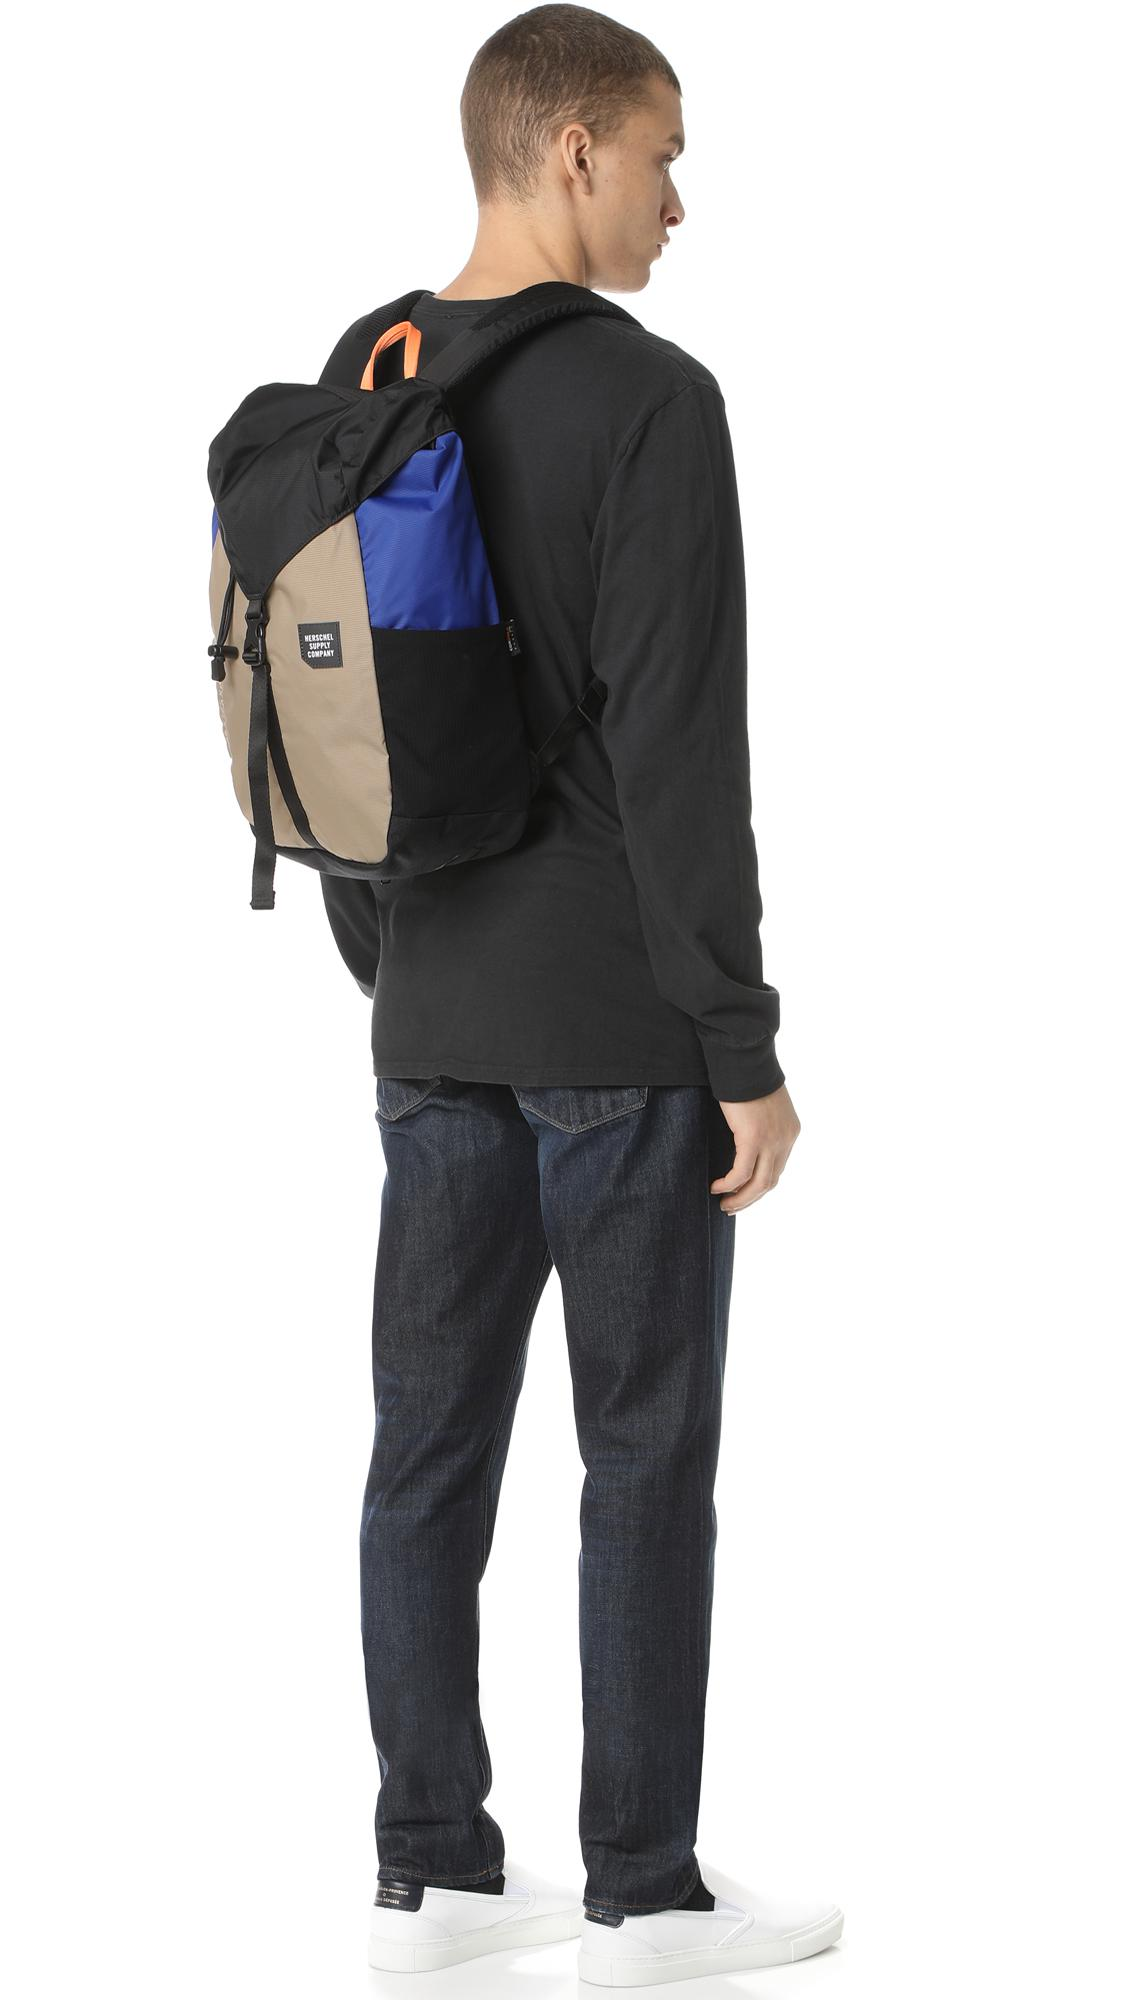 ea54f708ba9 Herschel Supply Co. Trail Barlow Medium Backpack in Black for Men - Lyst